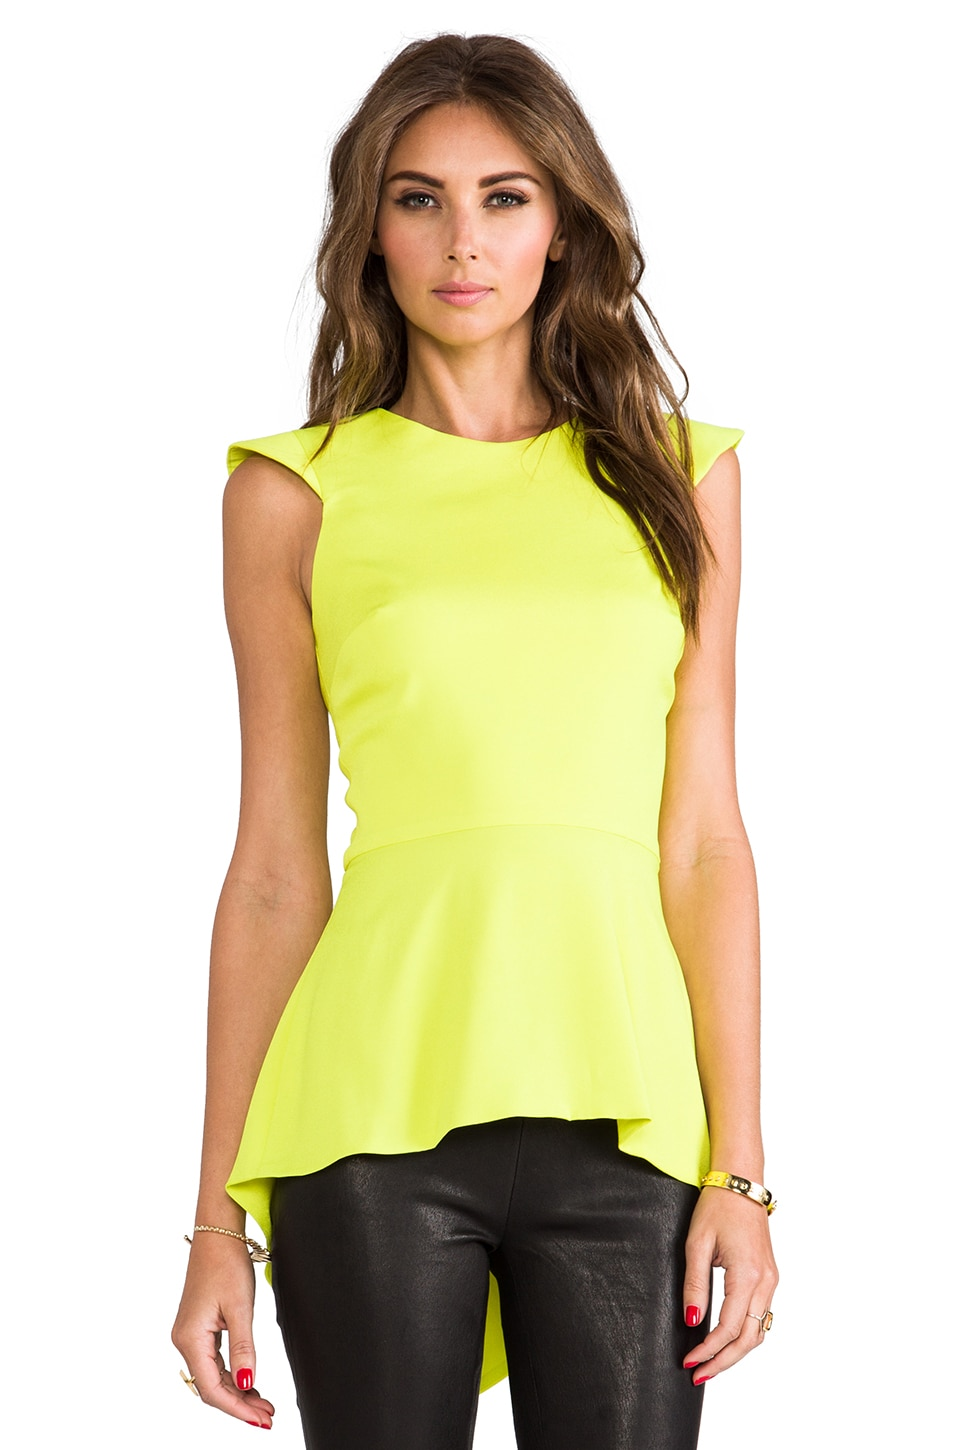 Naven Armor Blouse in Chartreuse